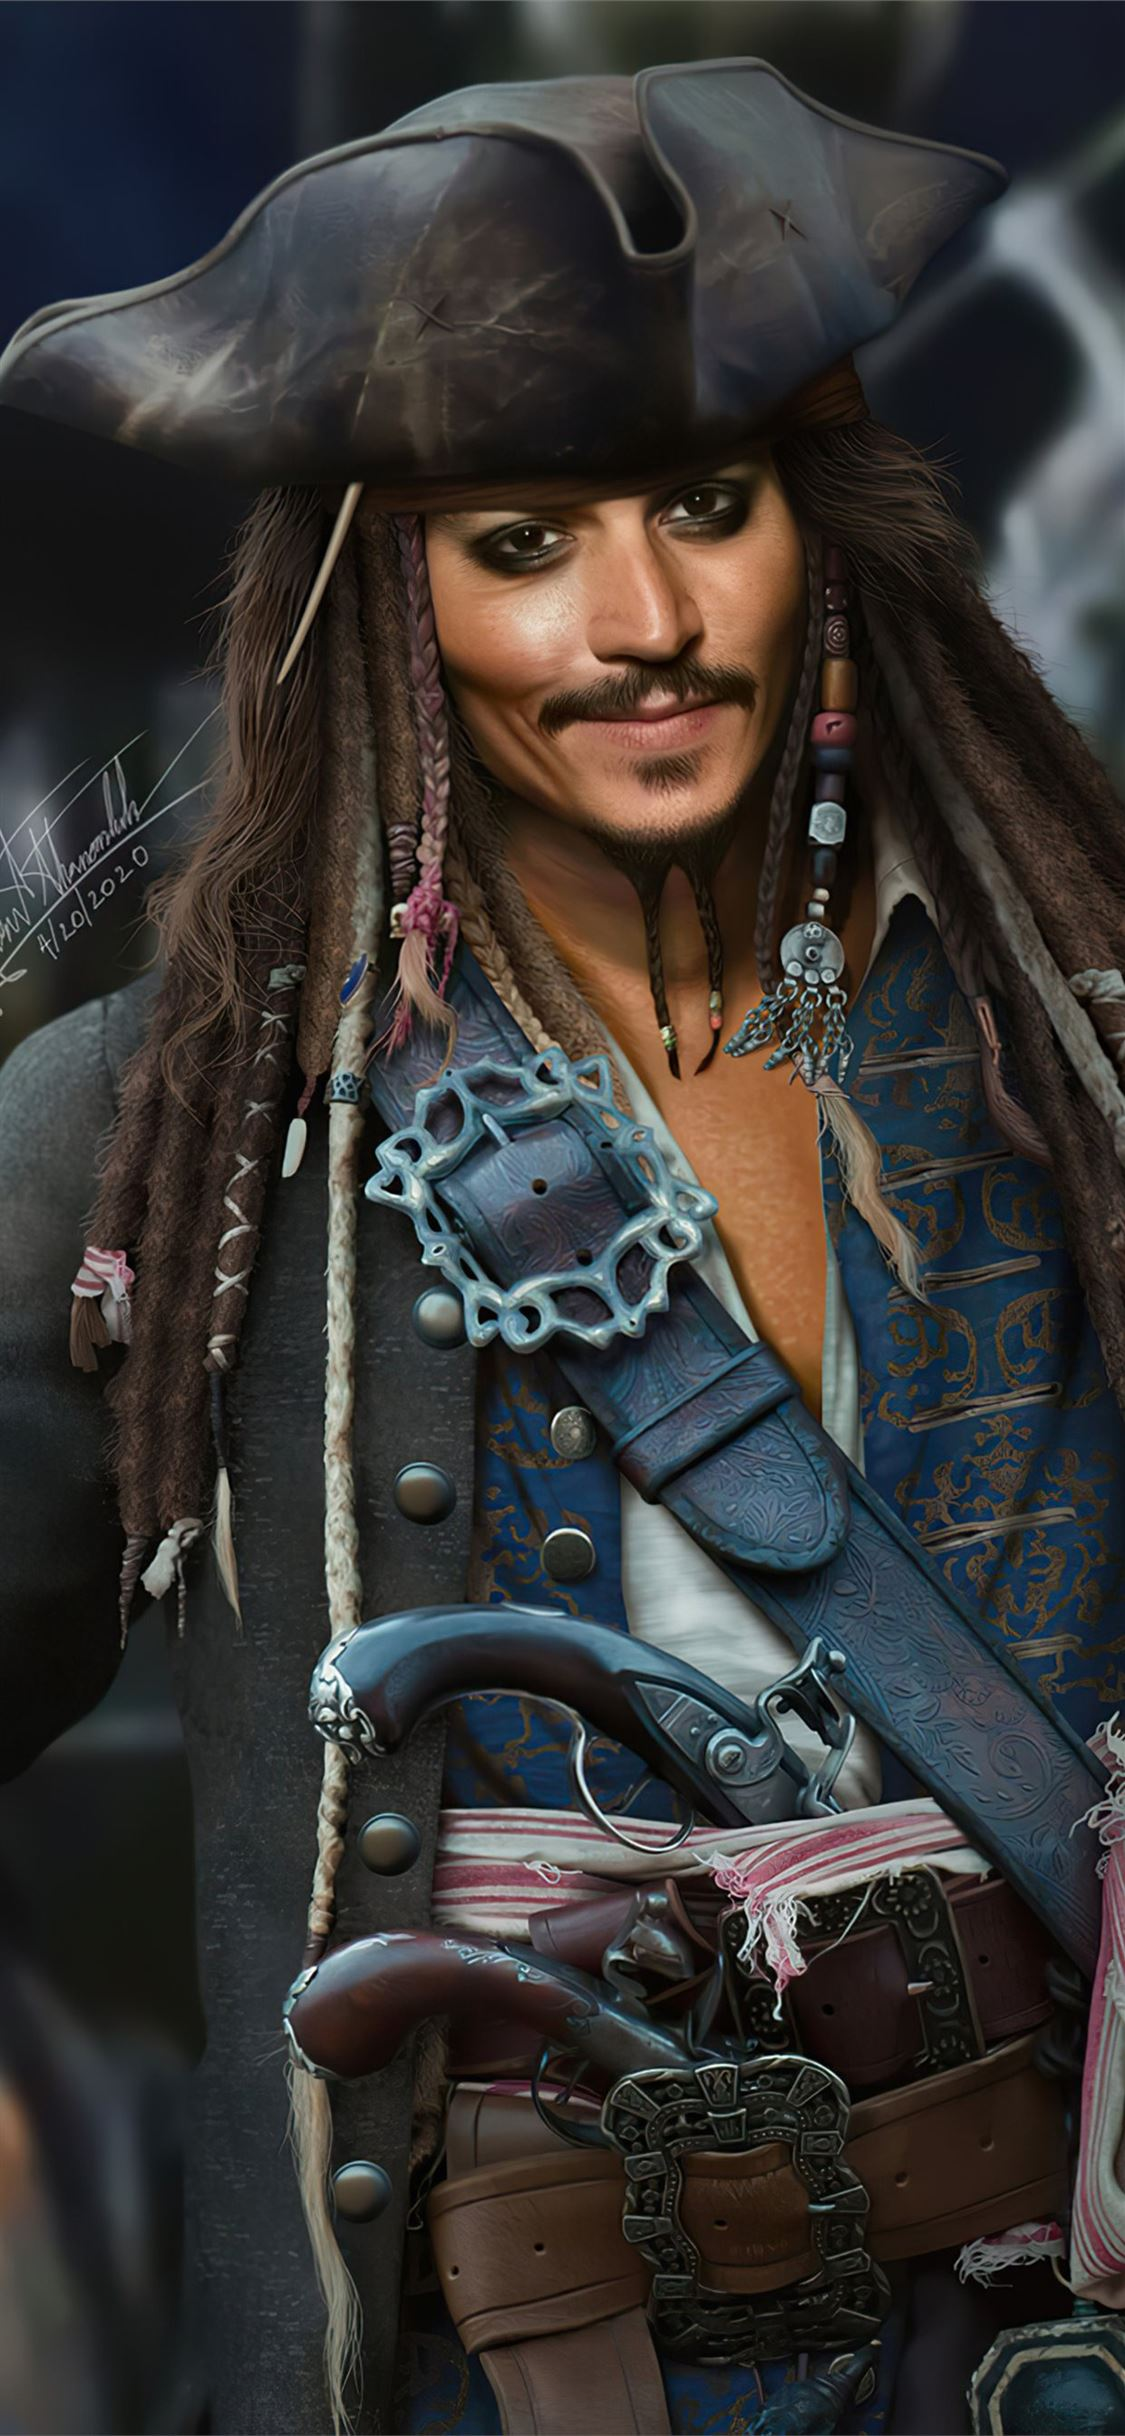 jack sparrow fanart 4k iPhone X